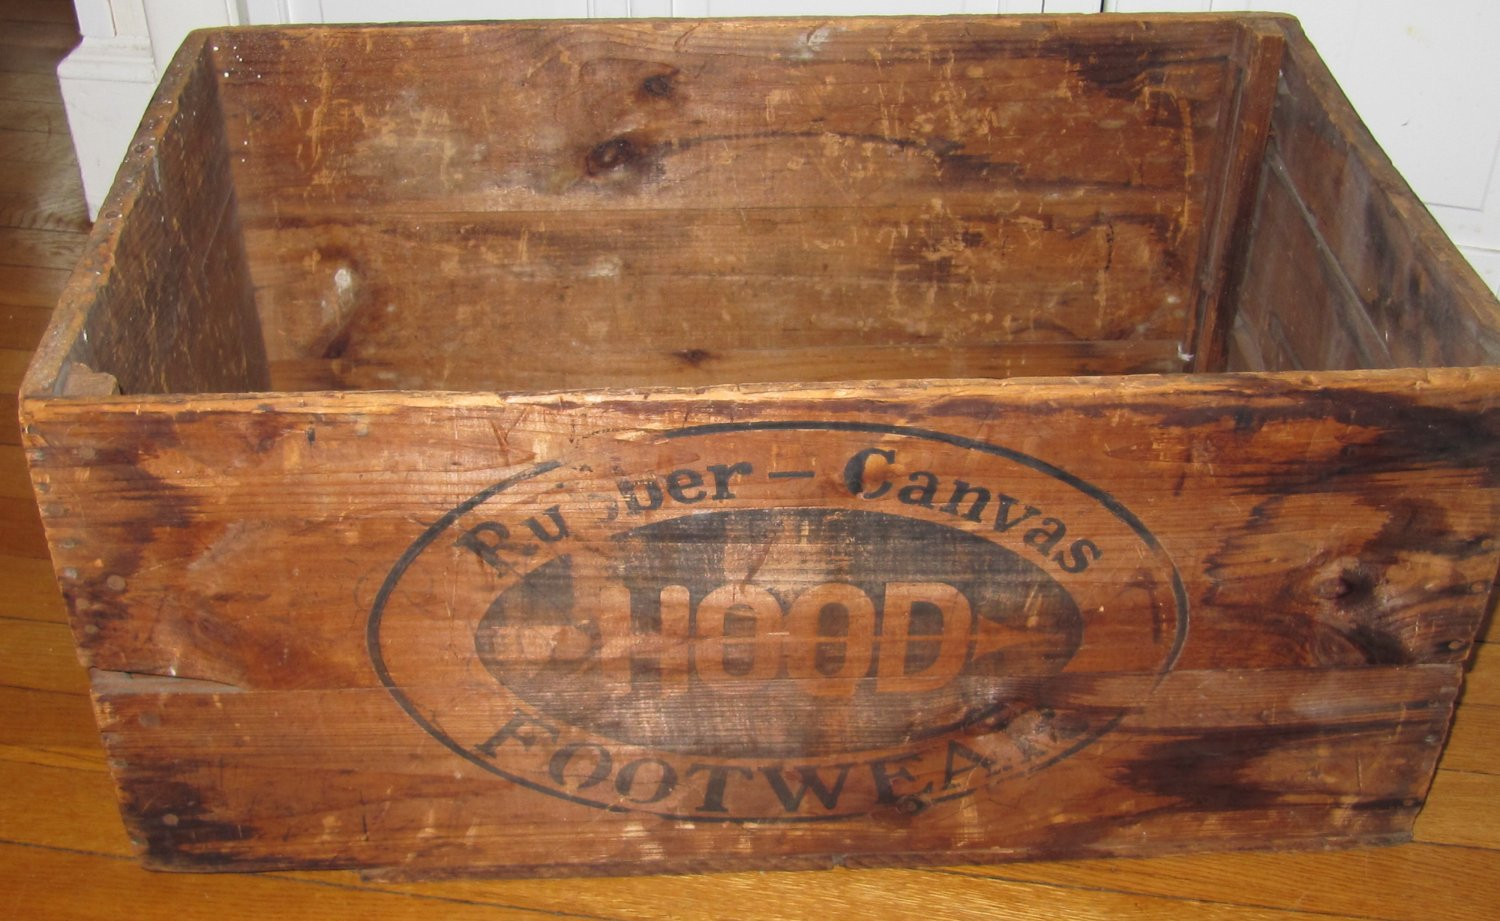 Large Vintage Hood Rubber Canvas Footwear Wooden Crate Box